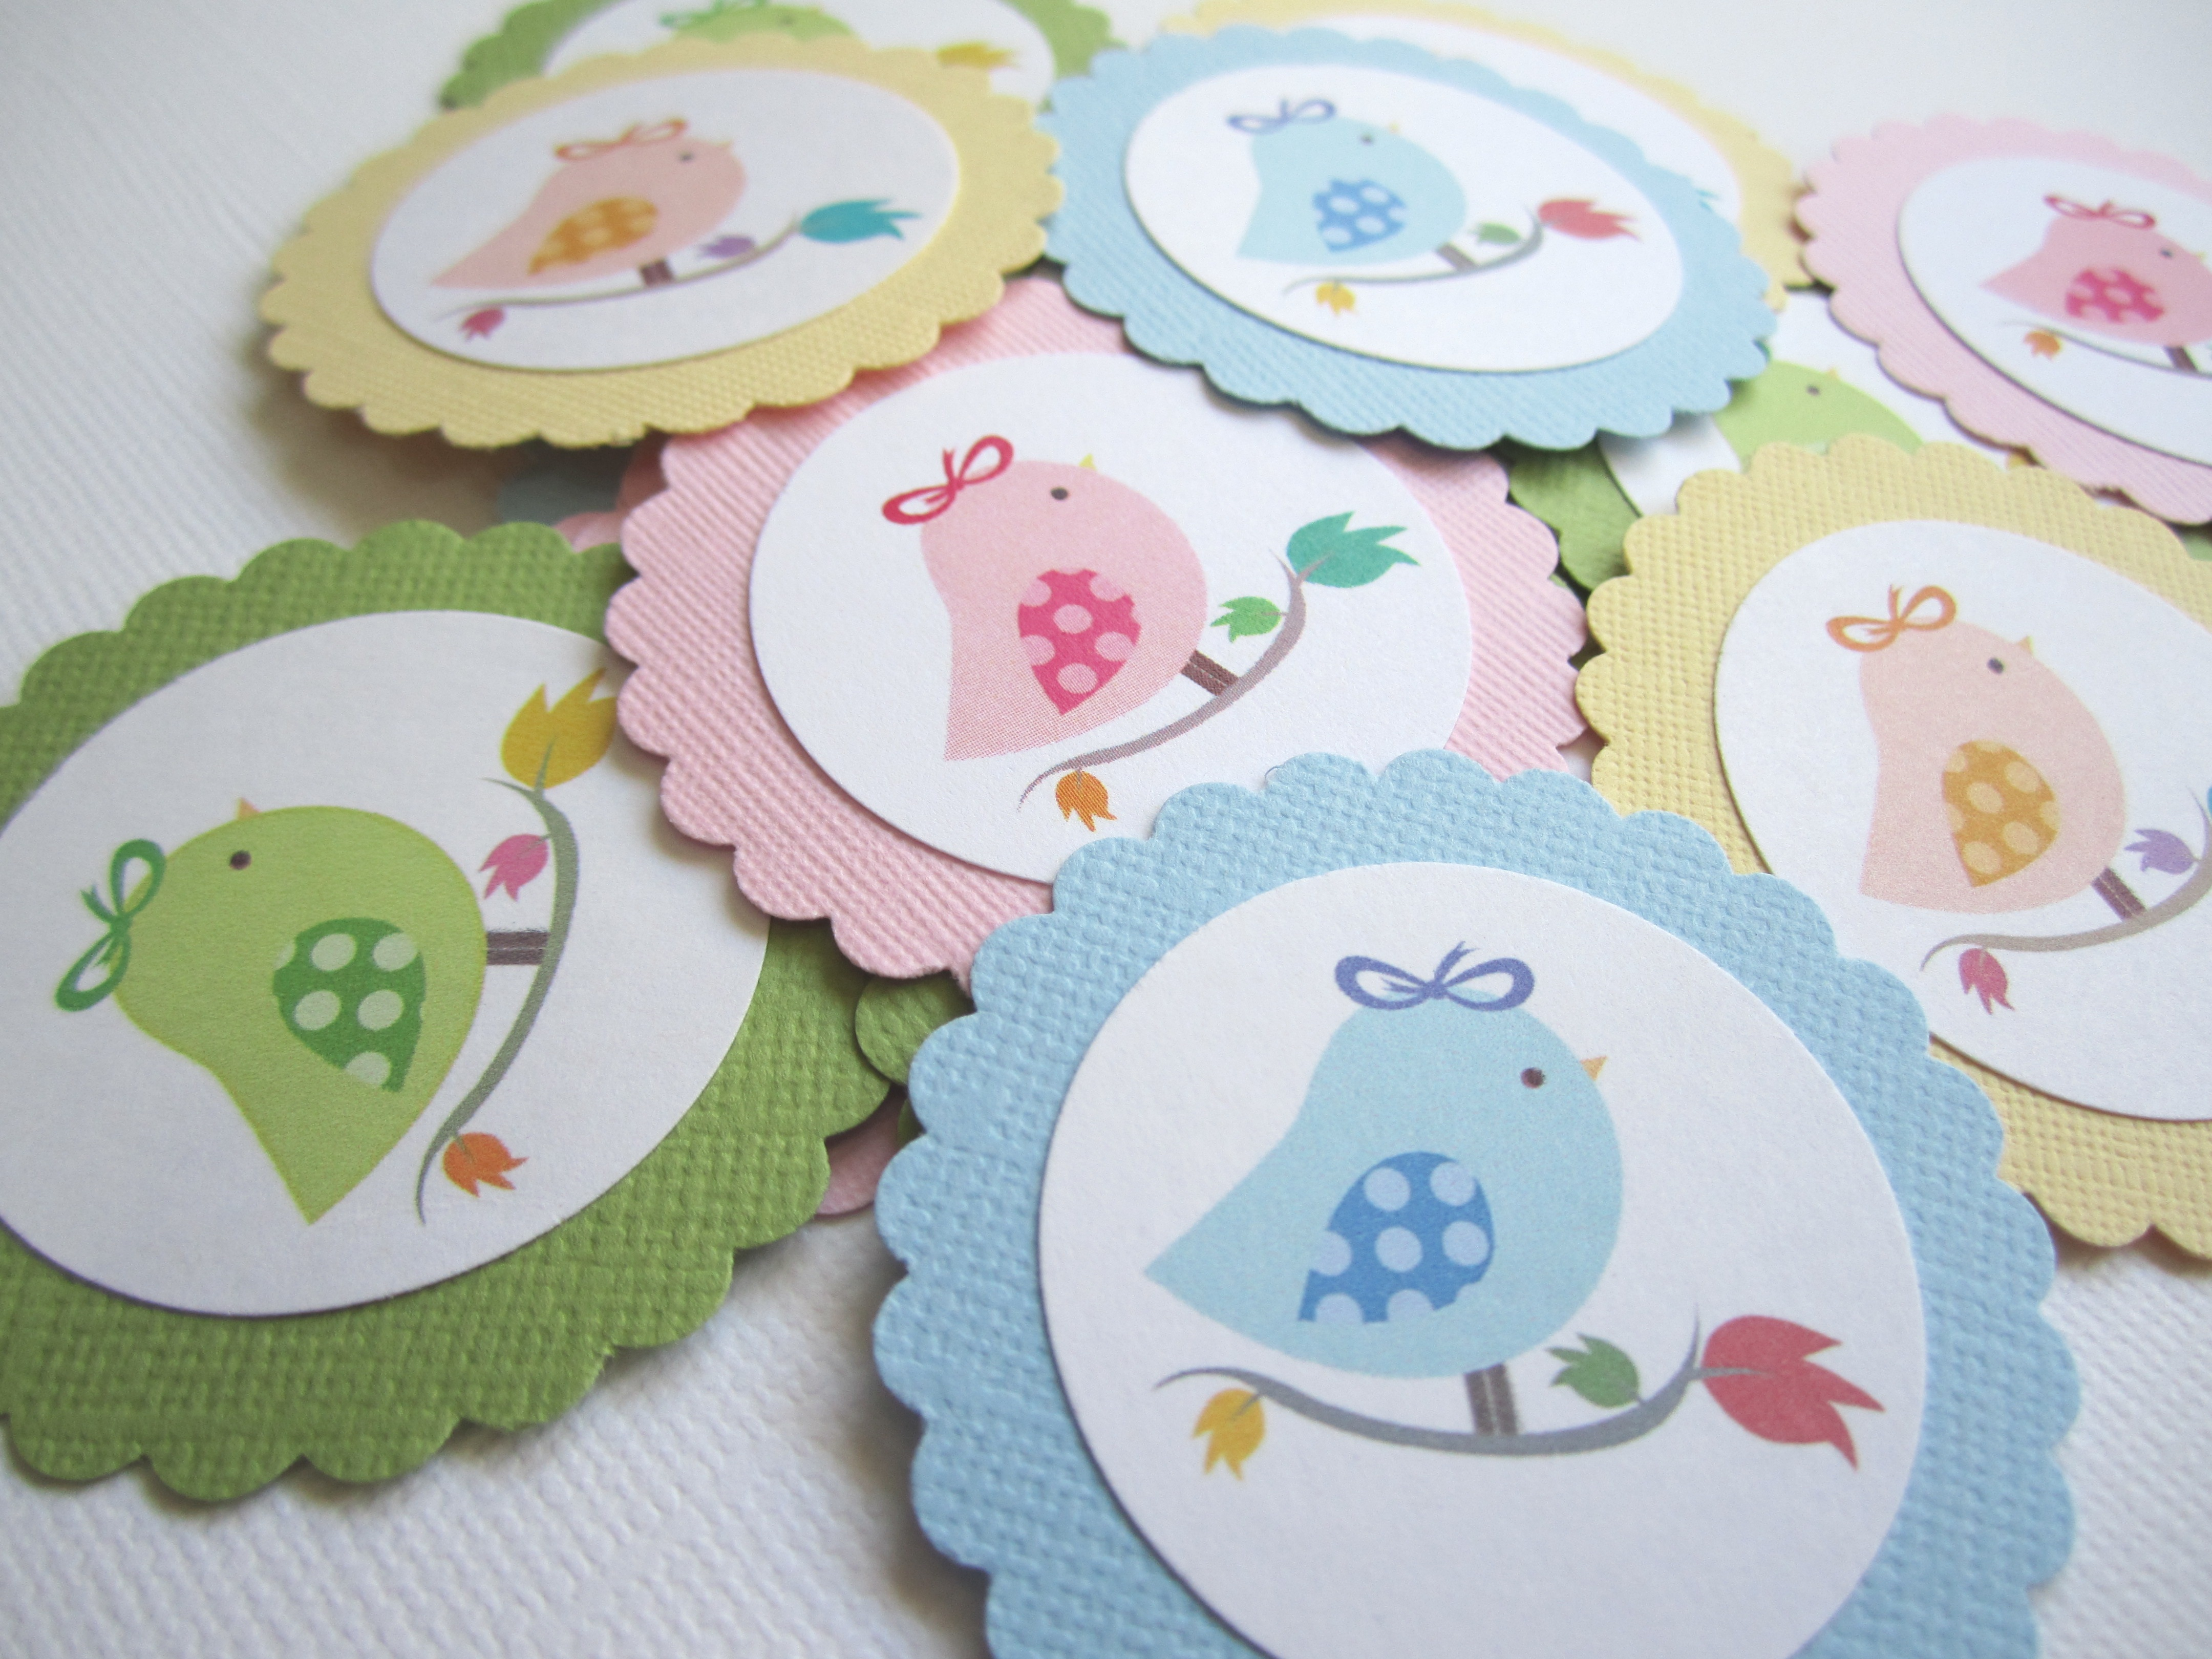 Cute Bird Gift Tags for Baby Shower and Birthday Party Favors